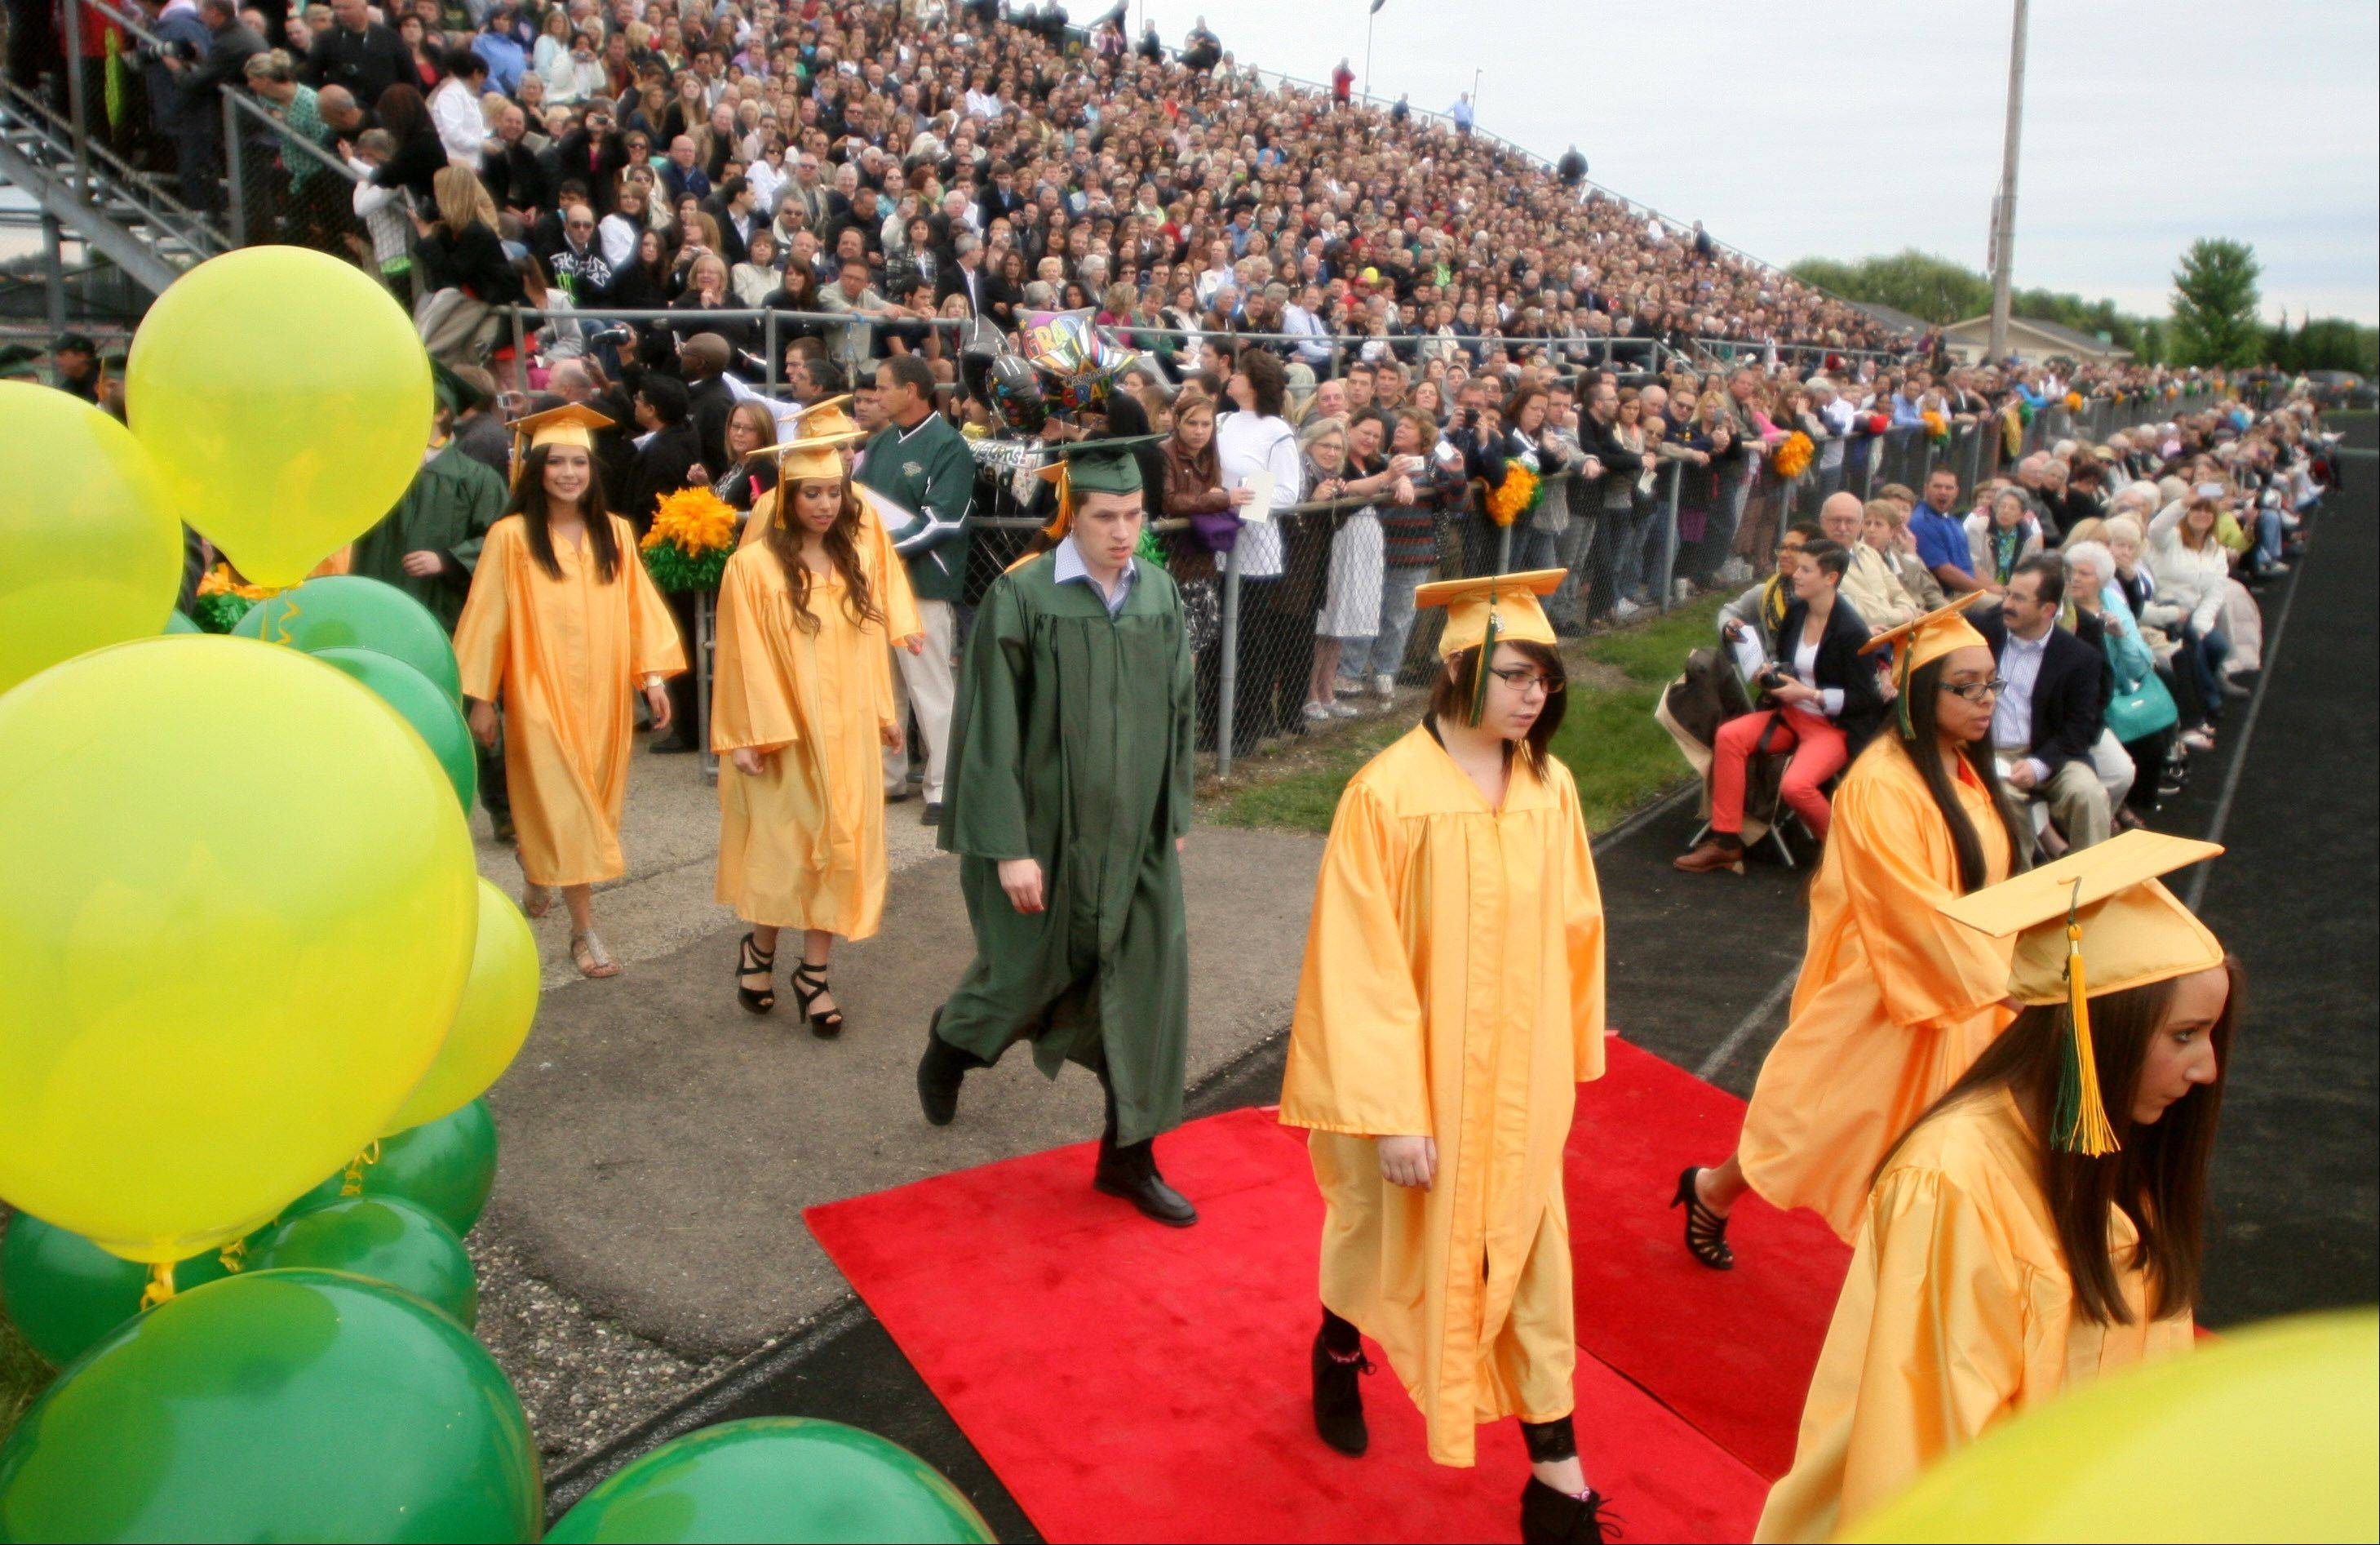 Members of the class of 2013 file in as part of commencement exercises at Crystal Lake South High School on Saturday at Ken Bruhn Field on the campus of Crystal Lake South.